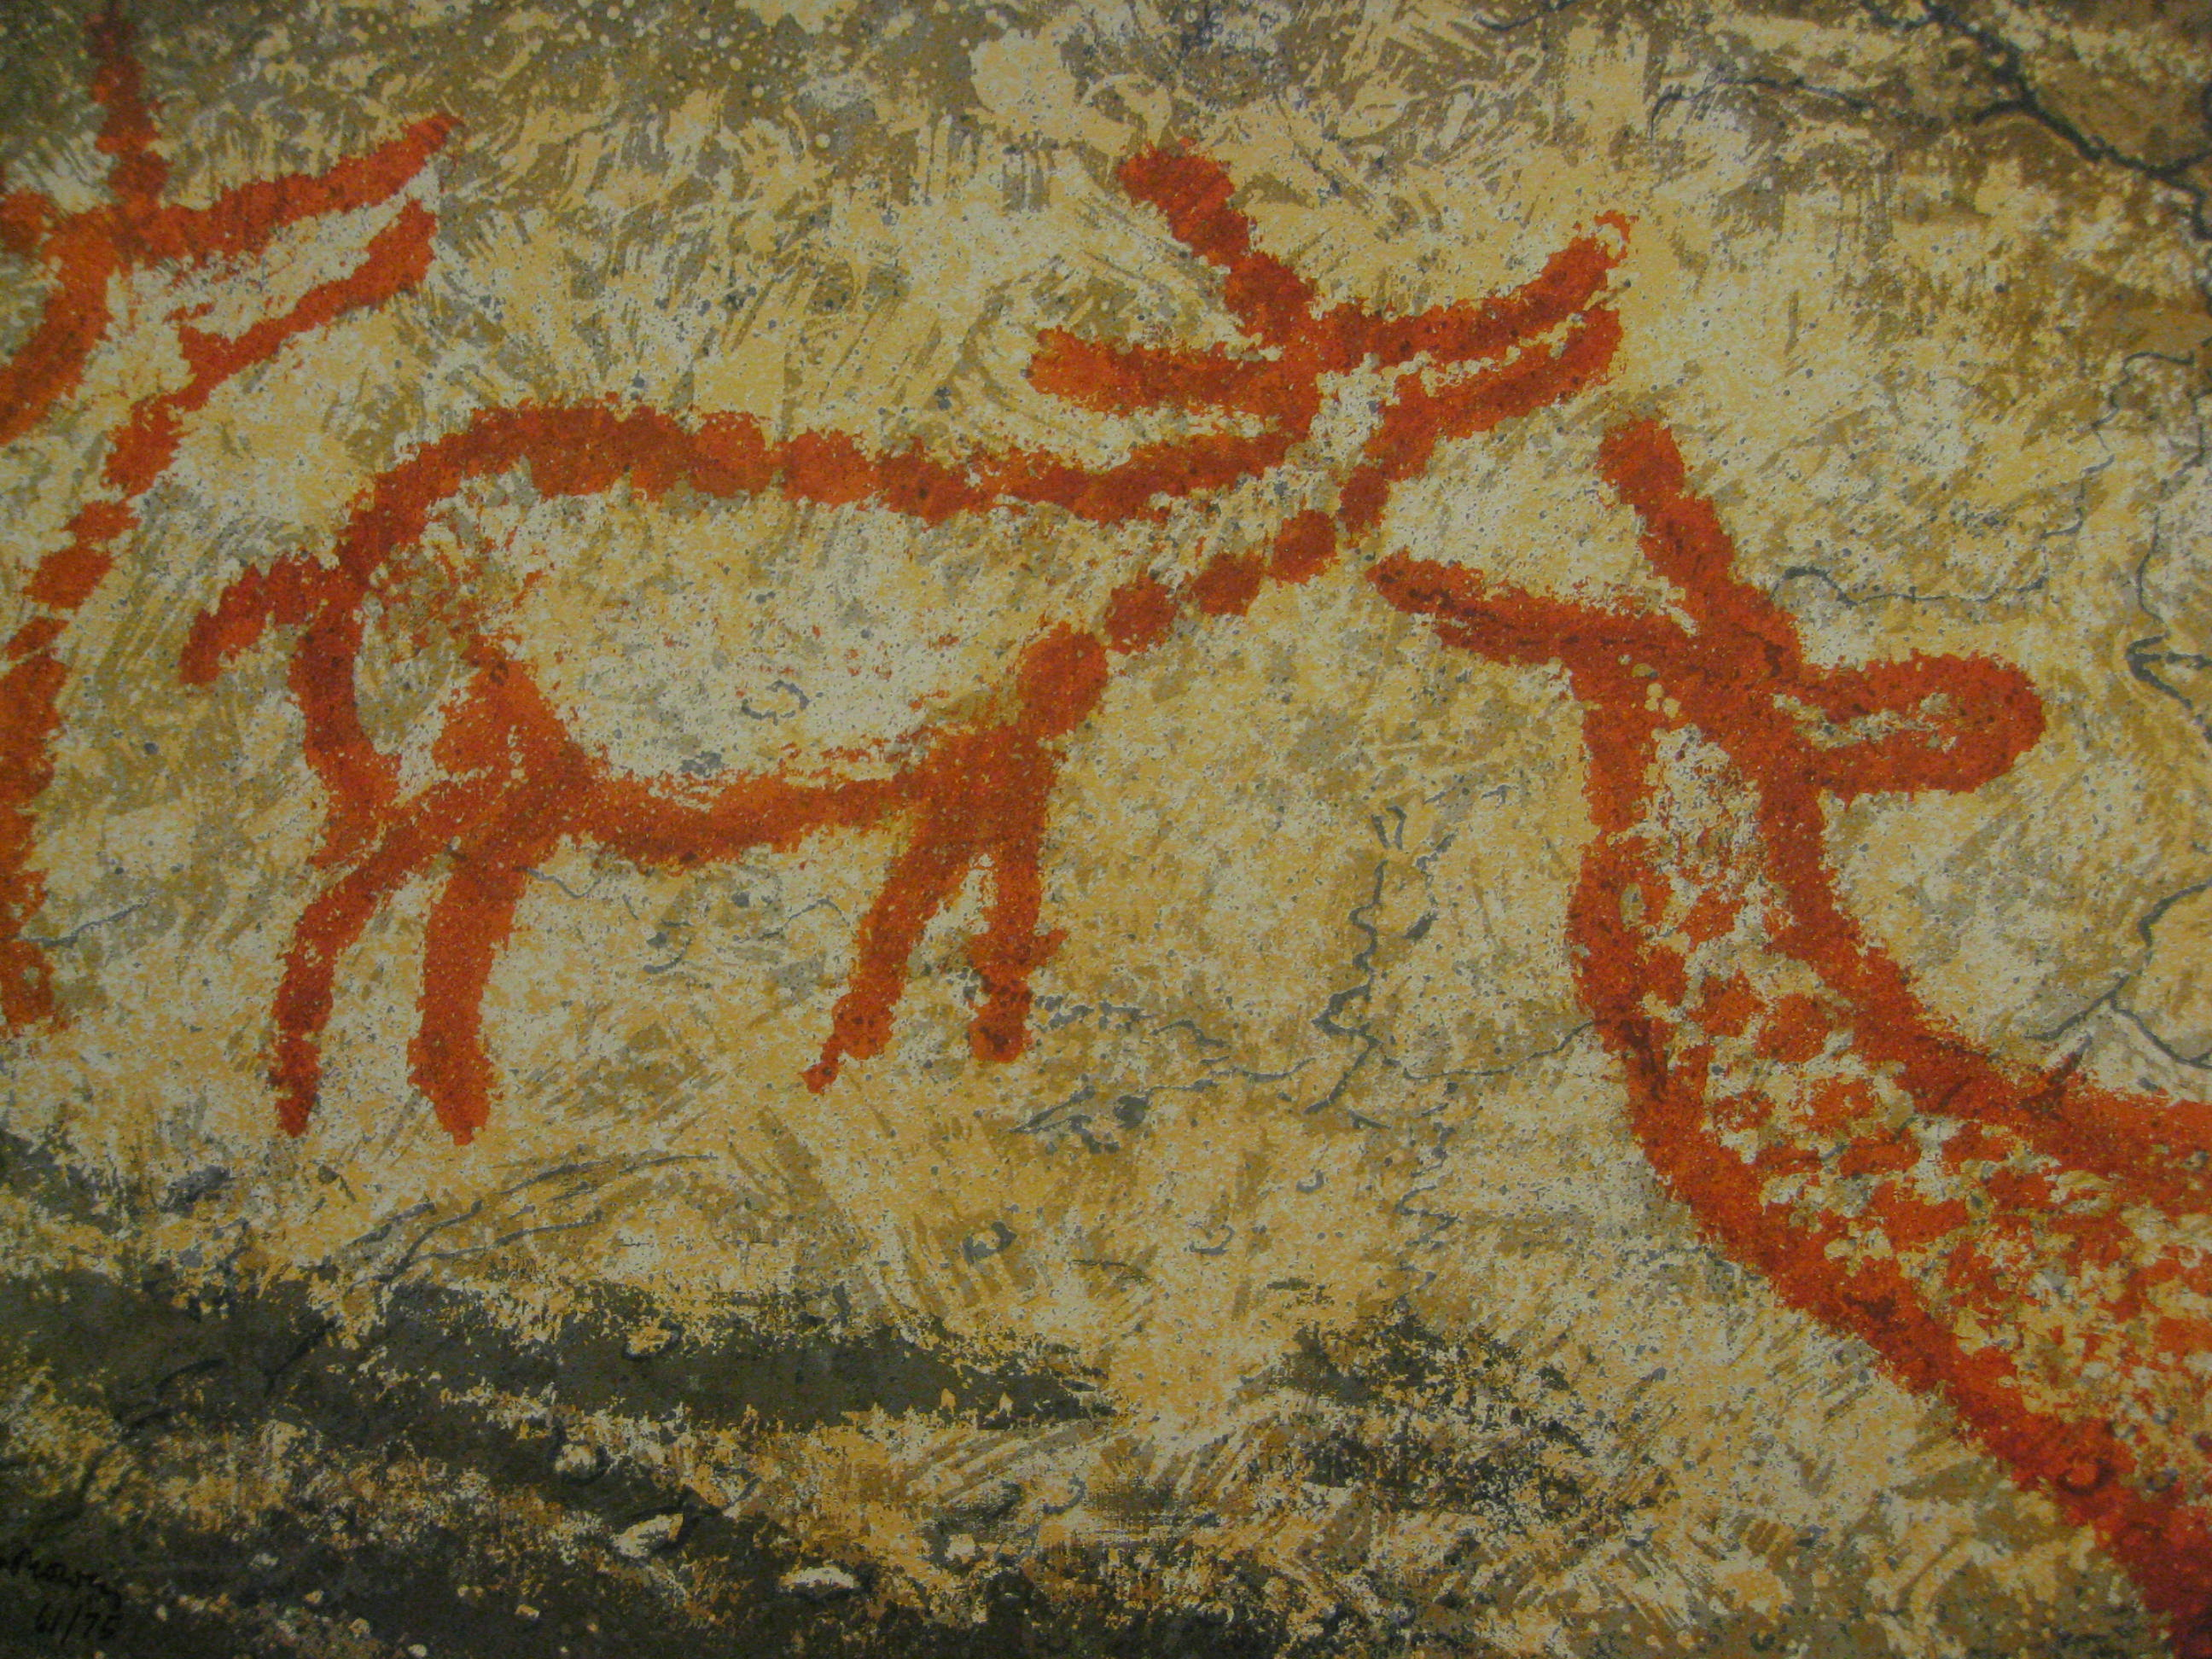 what does prehistoric art mean